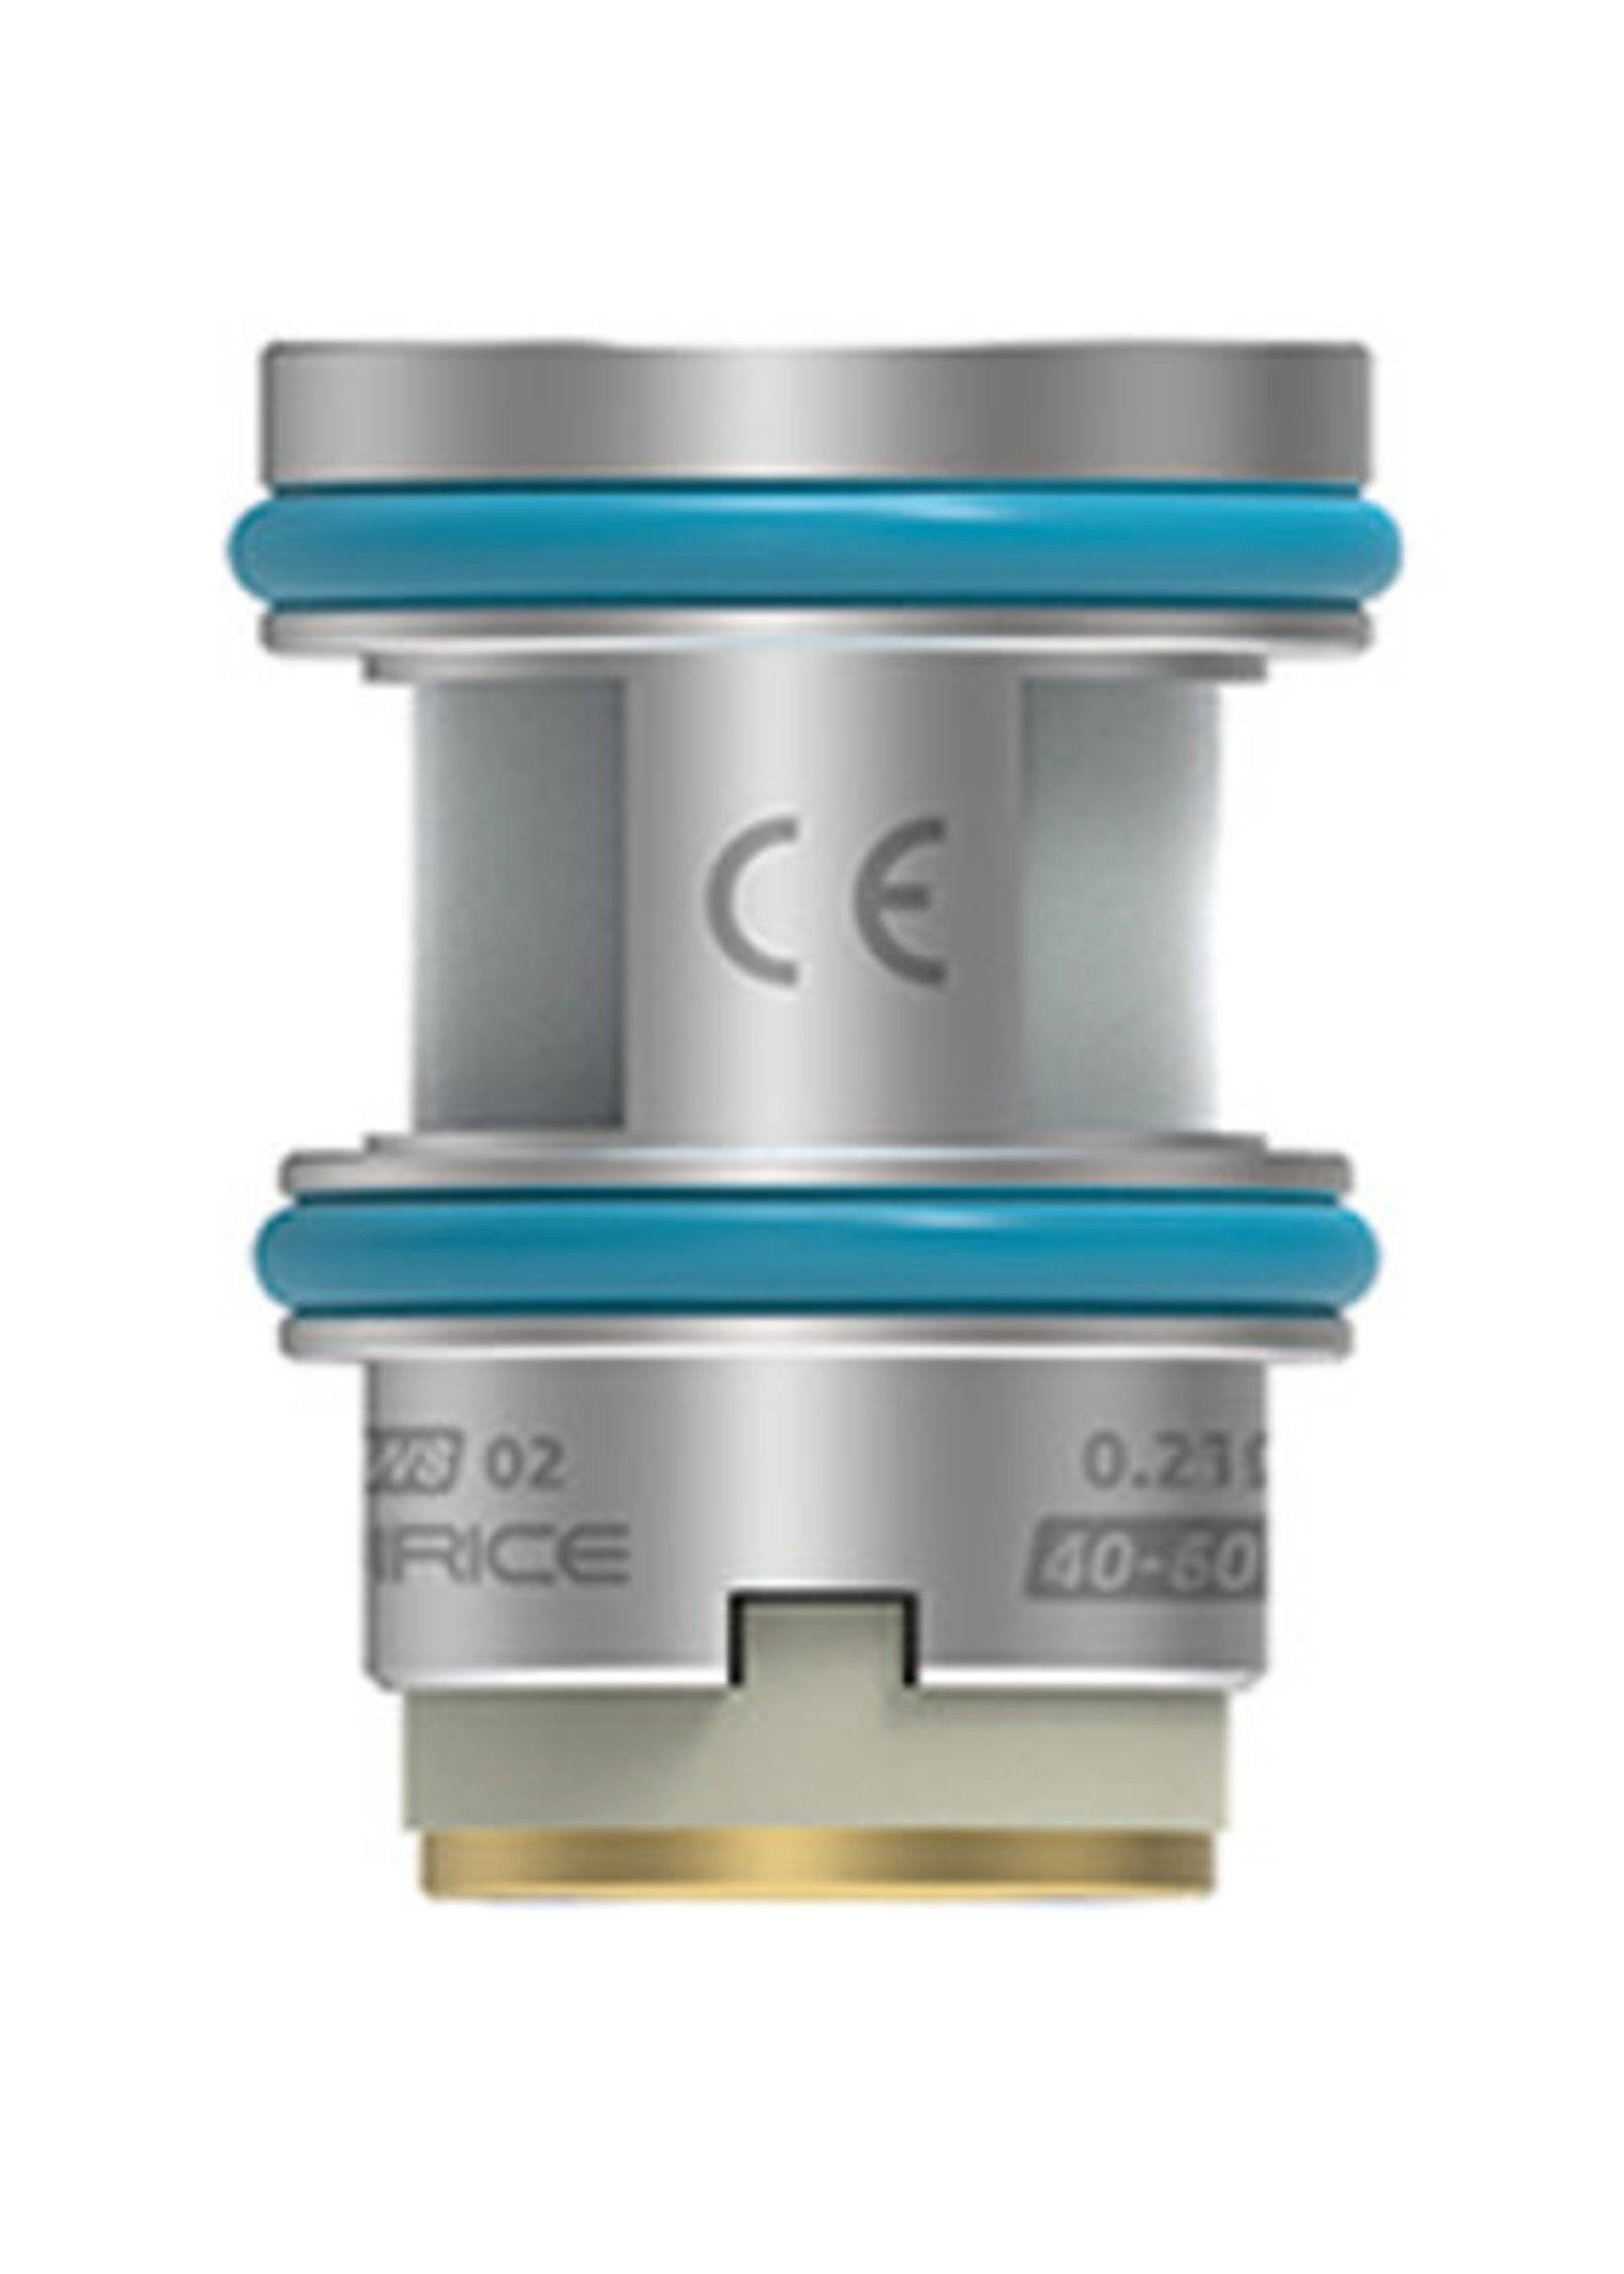 Hellvape Wirice Launcher Mesh Coil - 0.21 ohm